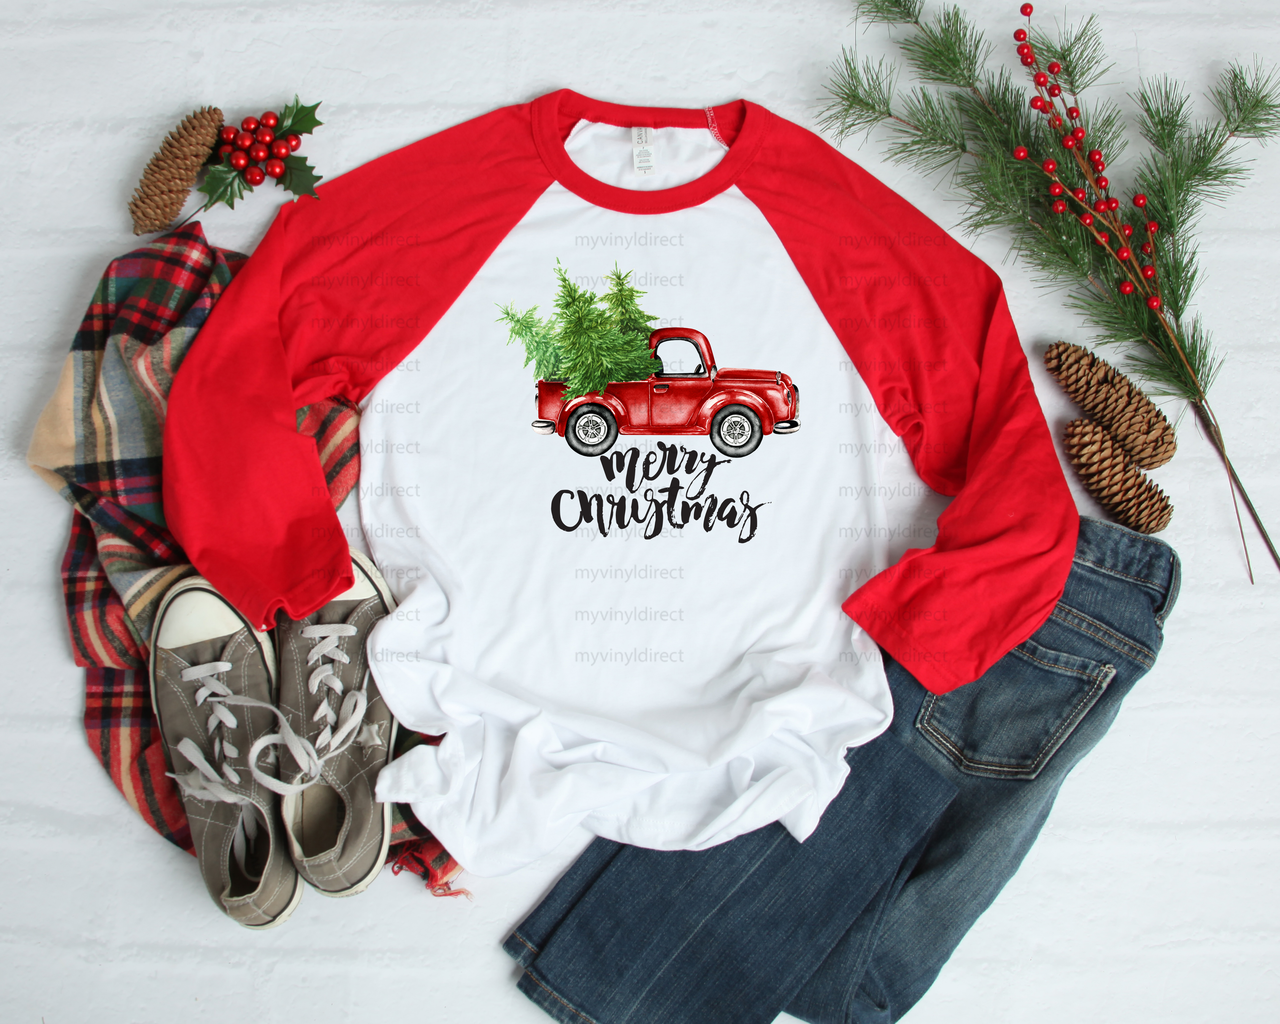 Christmas Jeep Silhouette.Merry Christmas Red Truck Sublimation Transfer